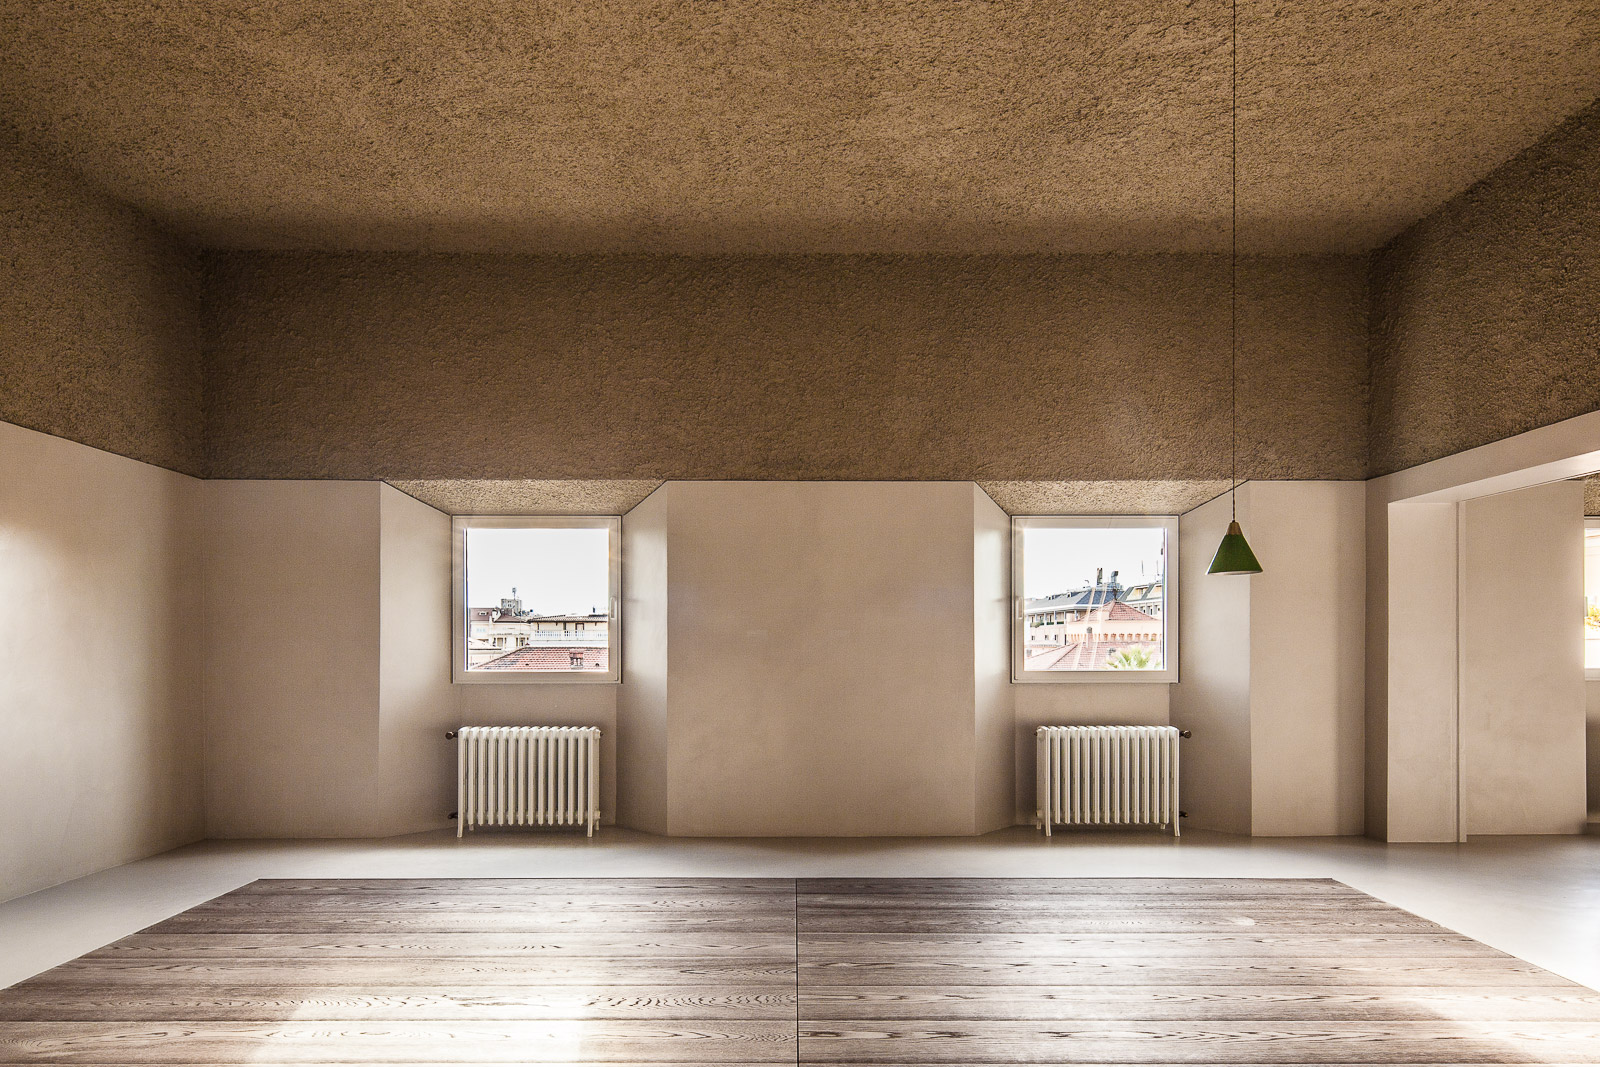 The House of Dust (Rome 2013) is an architectural work designed by Sicilian architect Antonino Cardillo: main hall at noon. Photography by Antonino Cardillo.